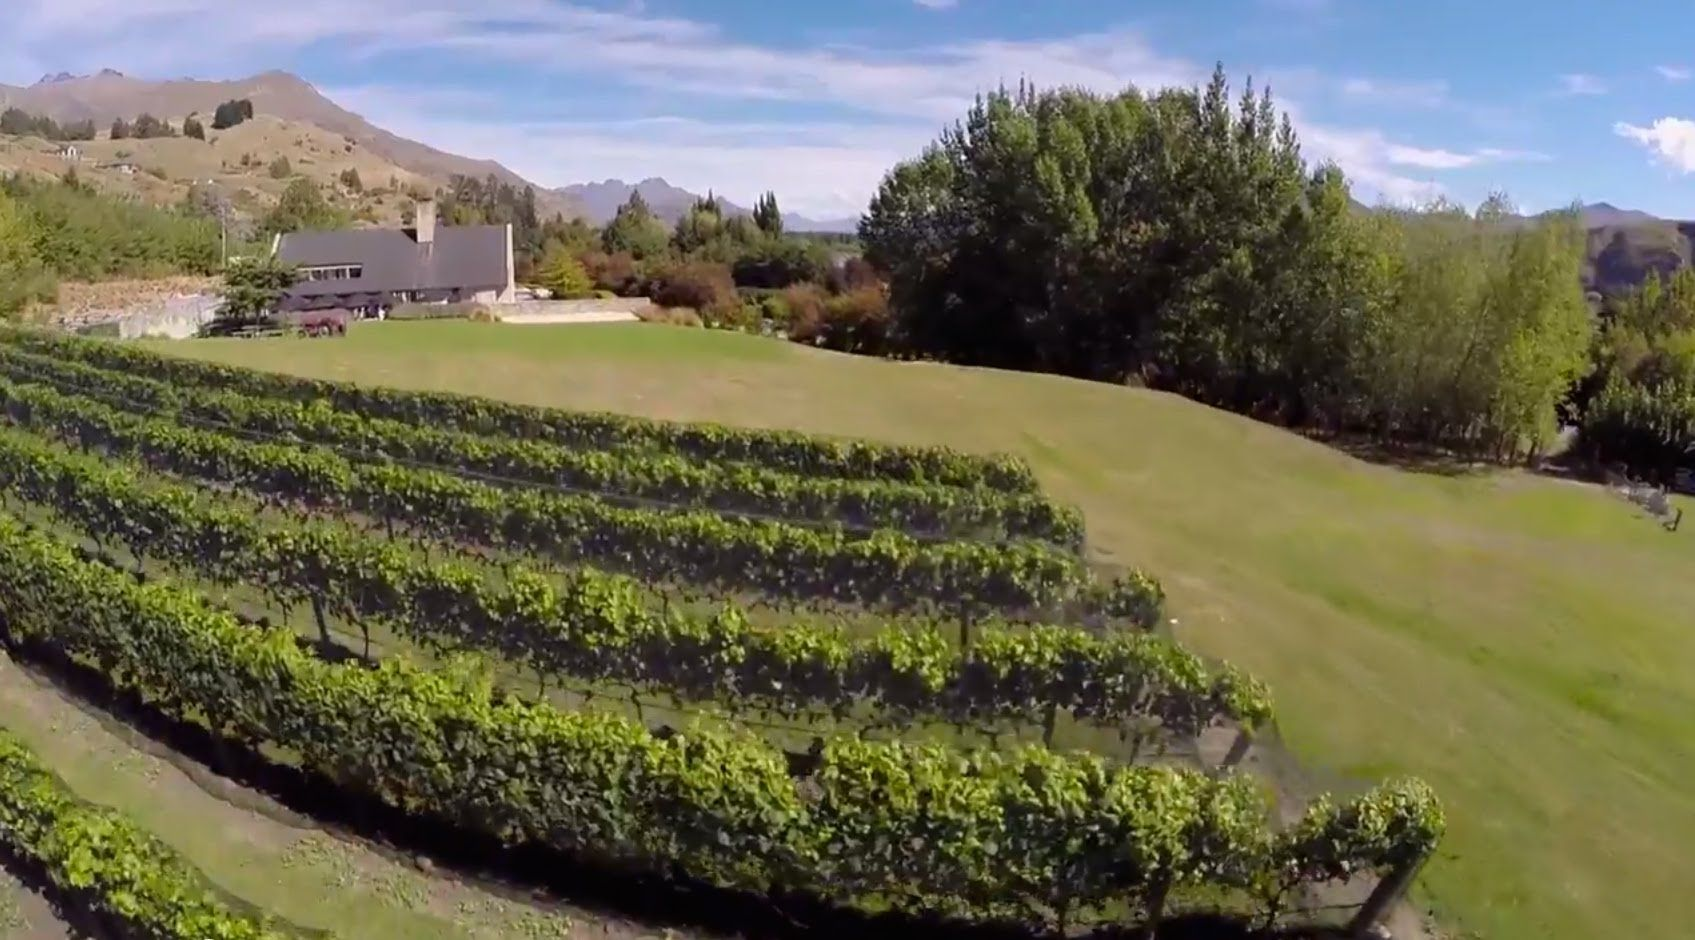 Wine Tasting in Queenstown, Central Otago. From the regions famous Pinot Noir to the delicate Rose and Pinot Gris, Queenstown has a wide range of world class wines to suit any palate. #ultimatequeenstown